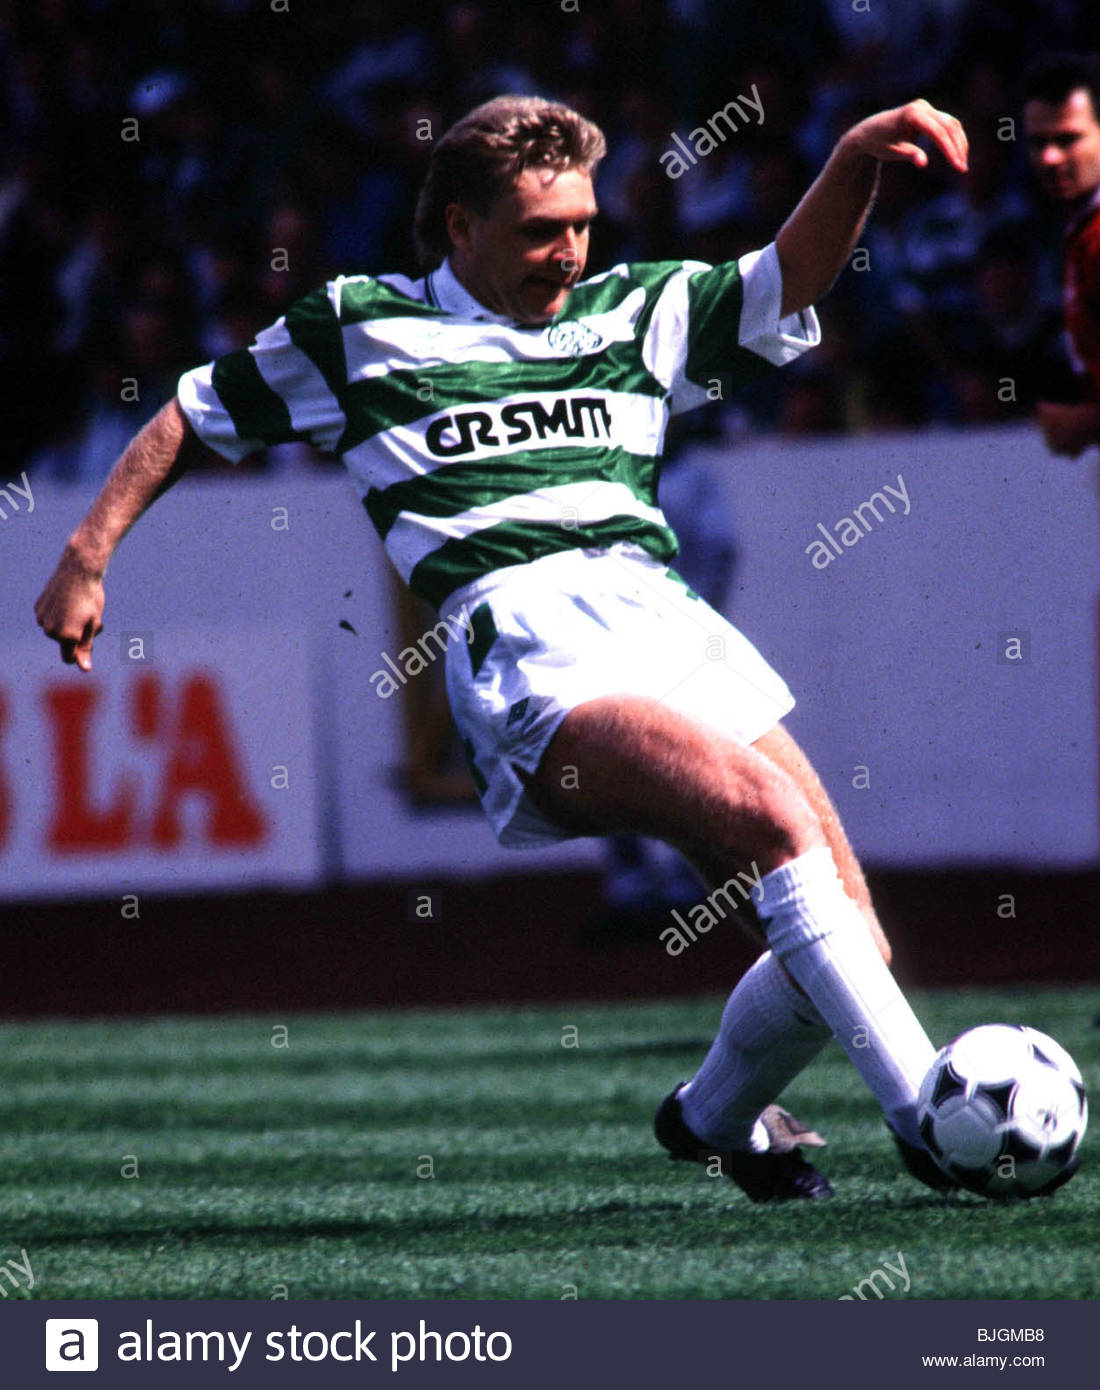 SEASON 1990/1991 CELTIC FC Peter Grant in action. - Stock Image